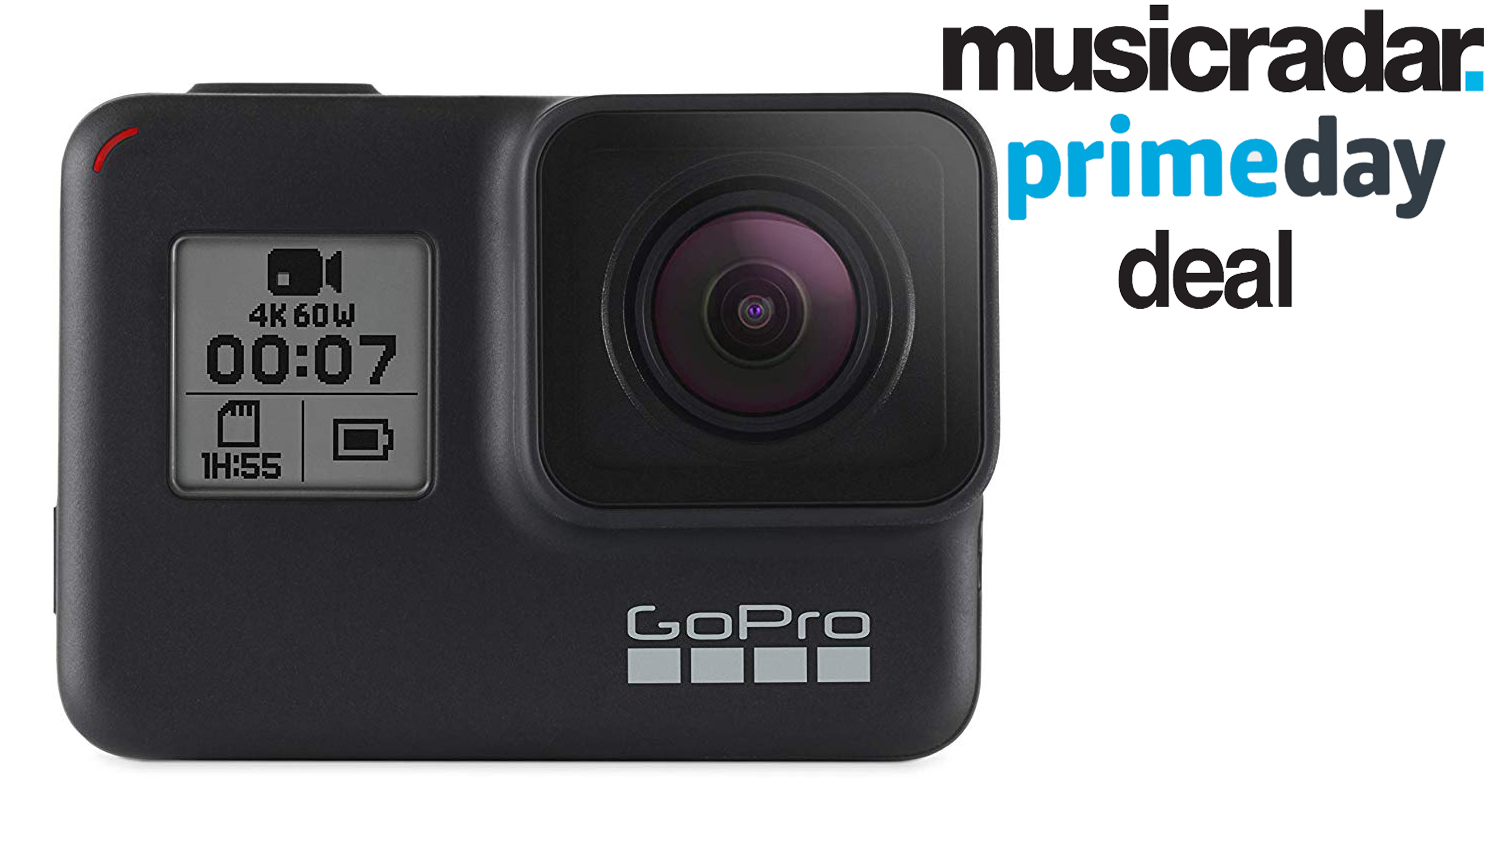 Prime Day deal: Save over £60 on a GoPro HERO 7 Black edition camera | MusicRadar